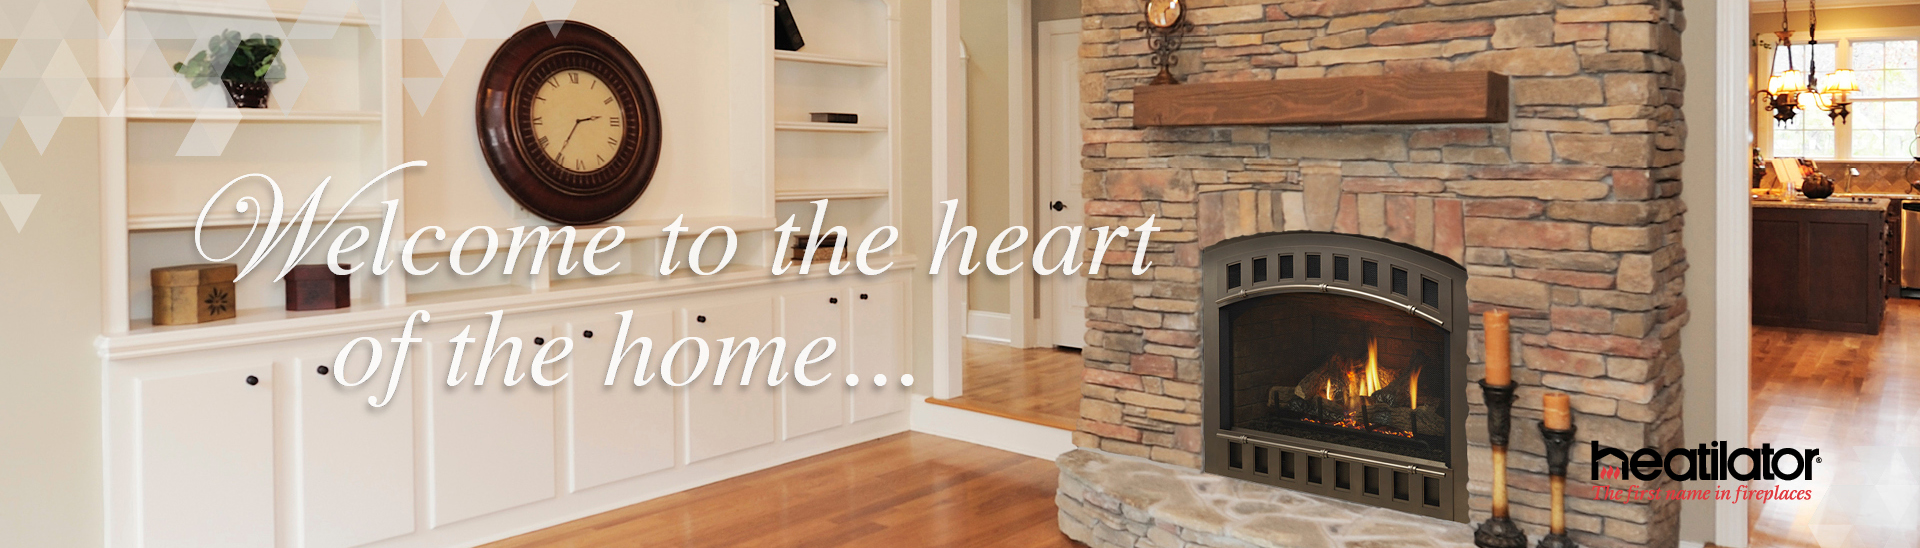 Welcome to the heart of the home